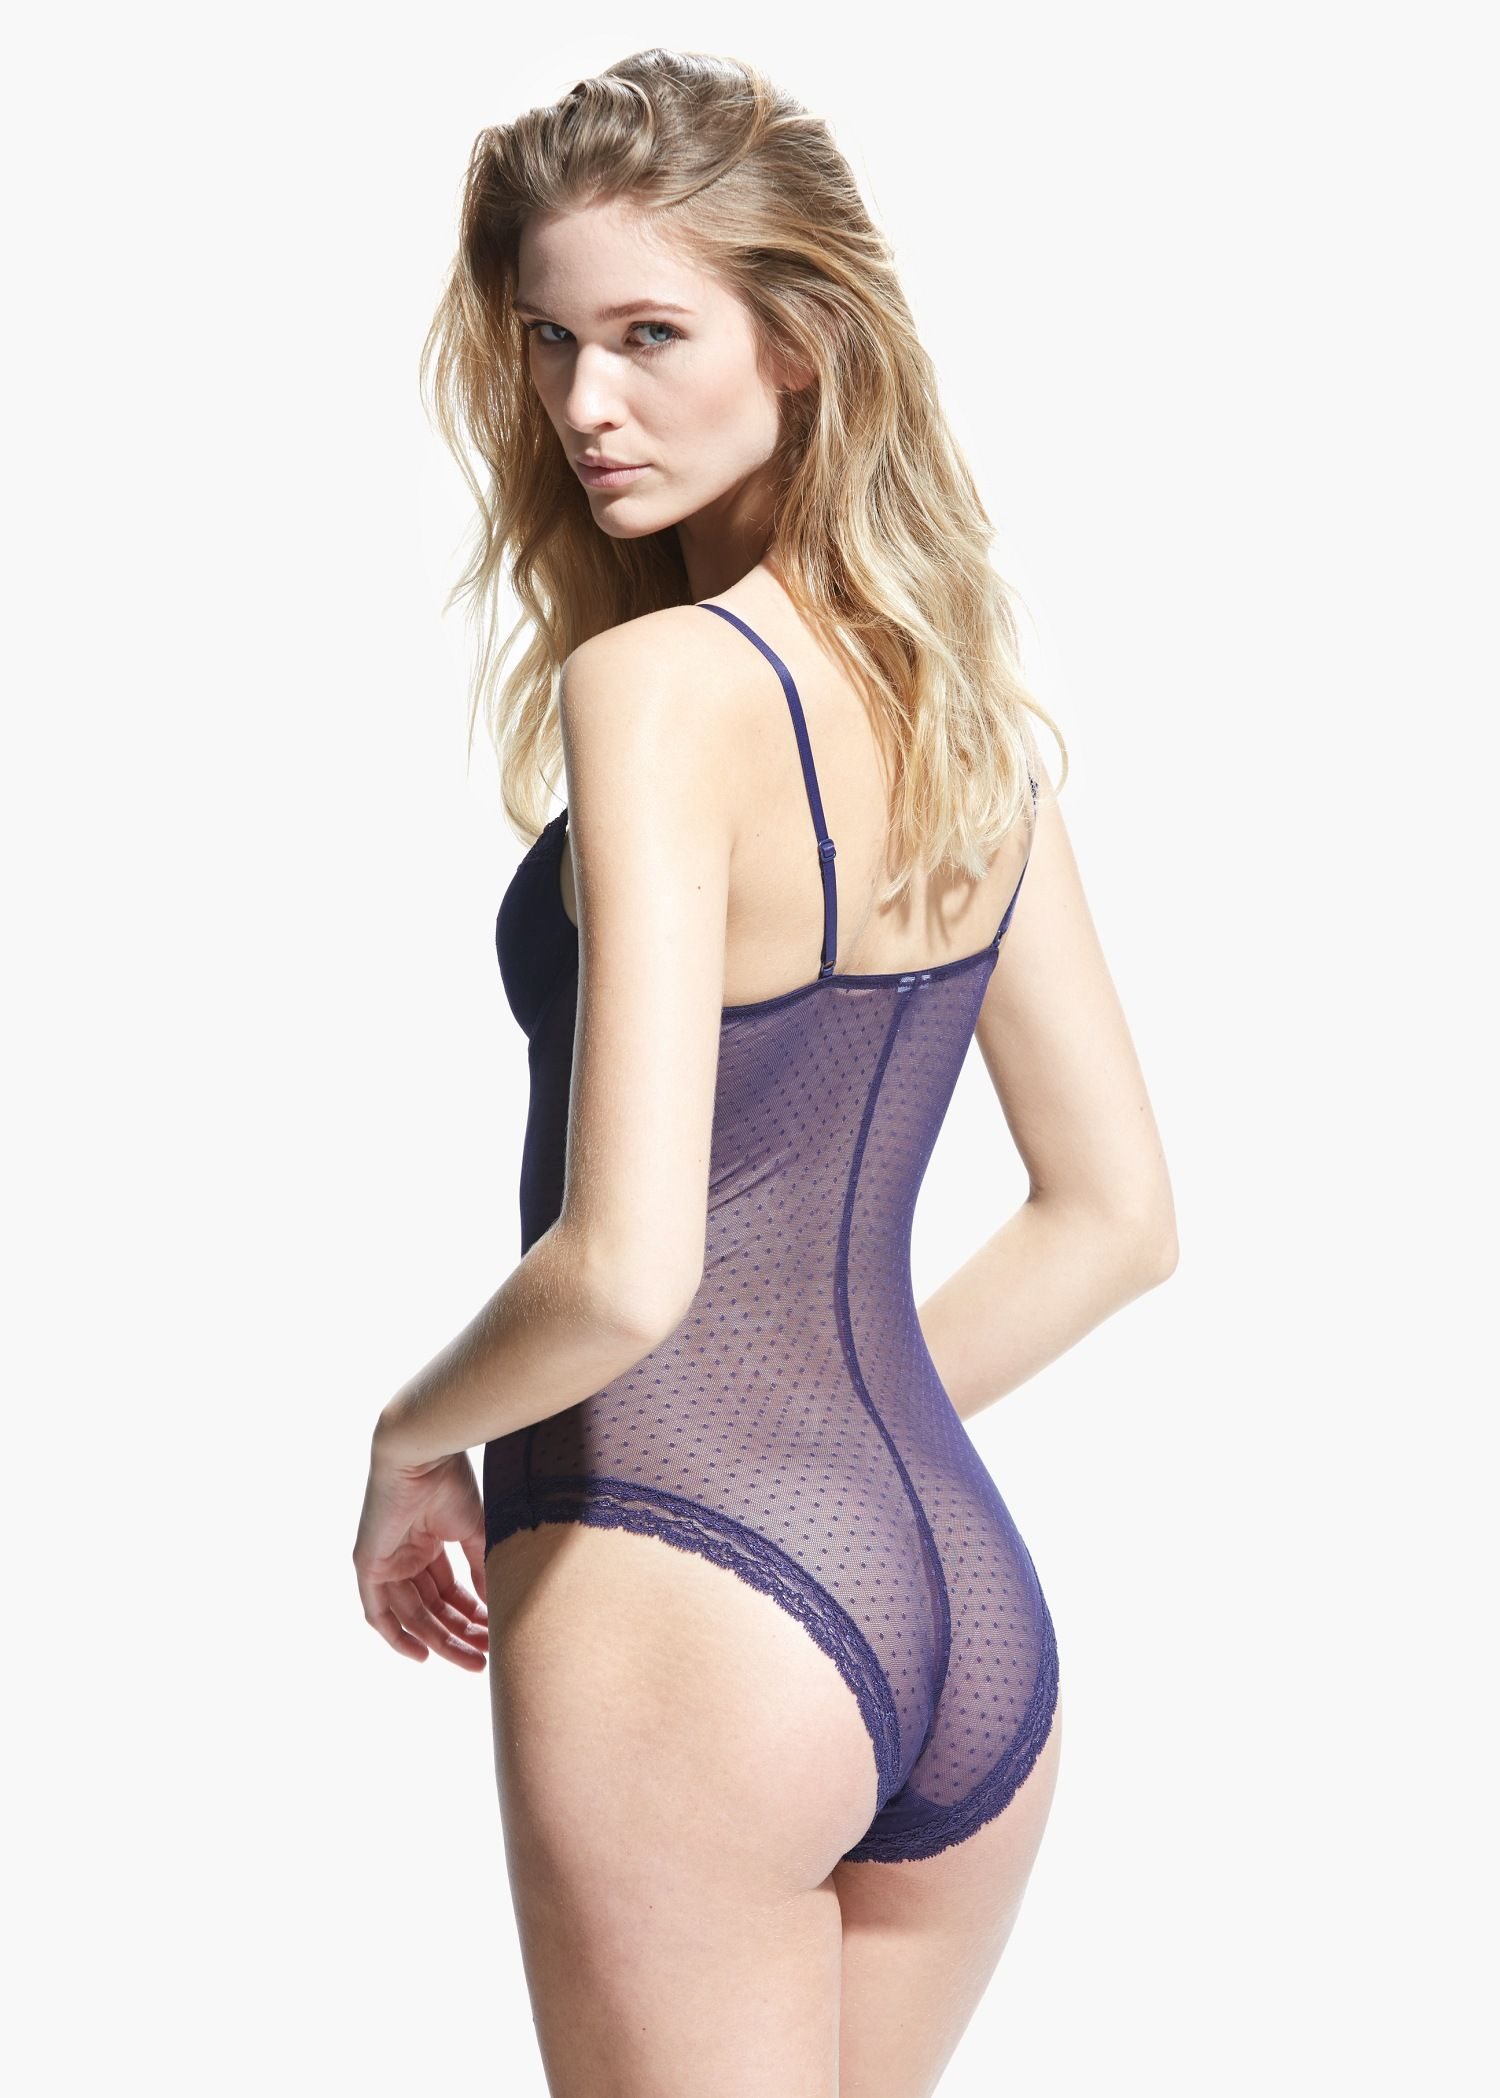 652964265c0b93 Polka-dot lace bodysuit - Intimates for Women